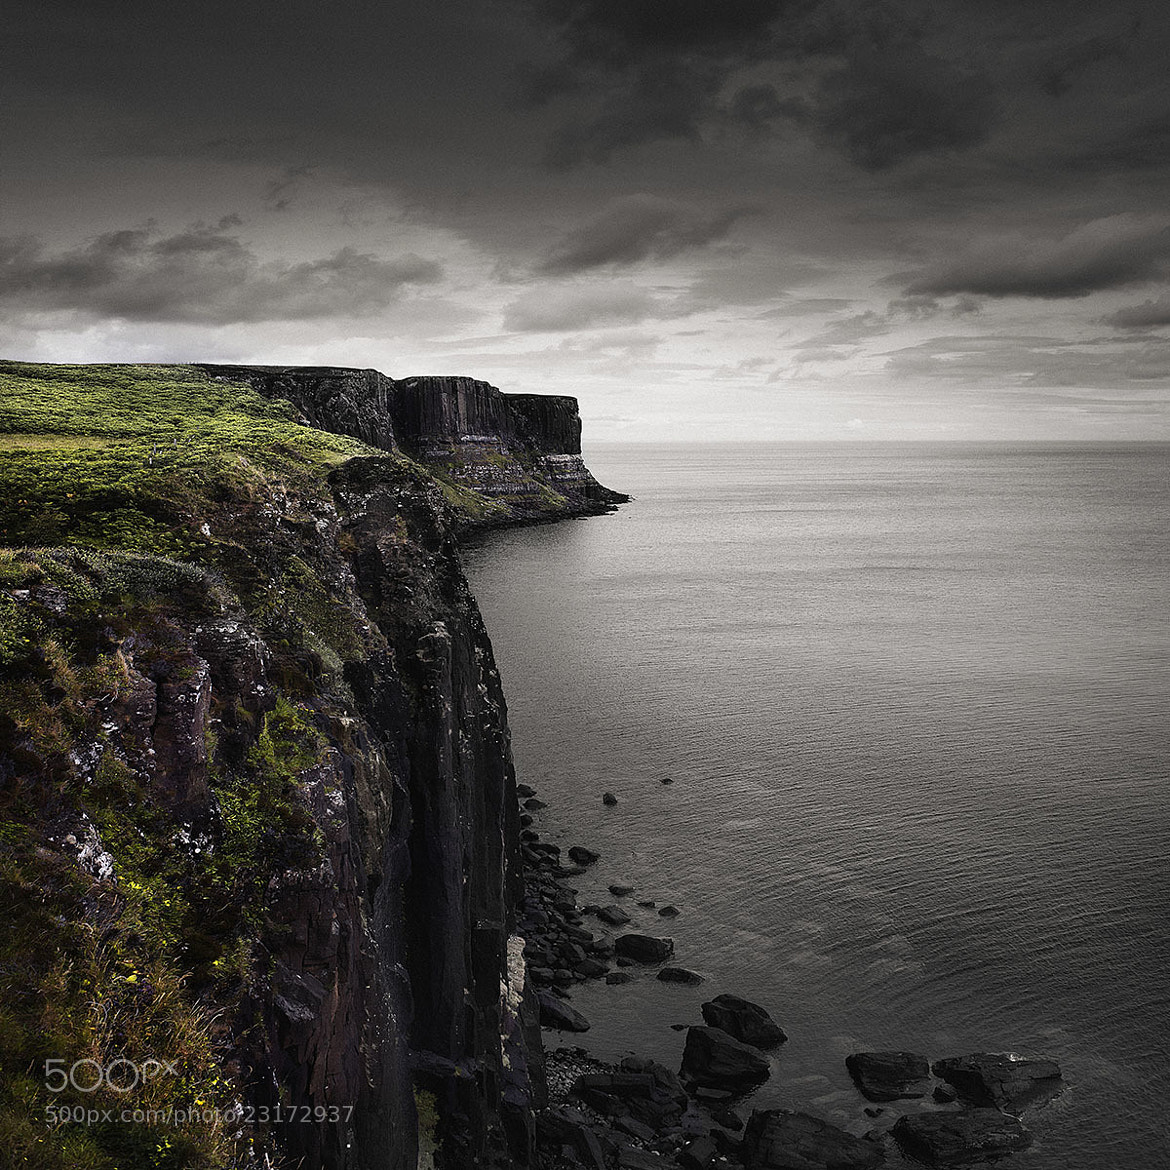 Photograph Kilt Rock, Isle of Skye, Scotland UK by Kim Sokola on 500px